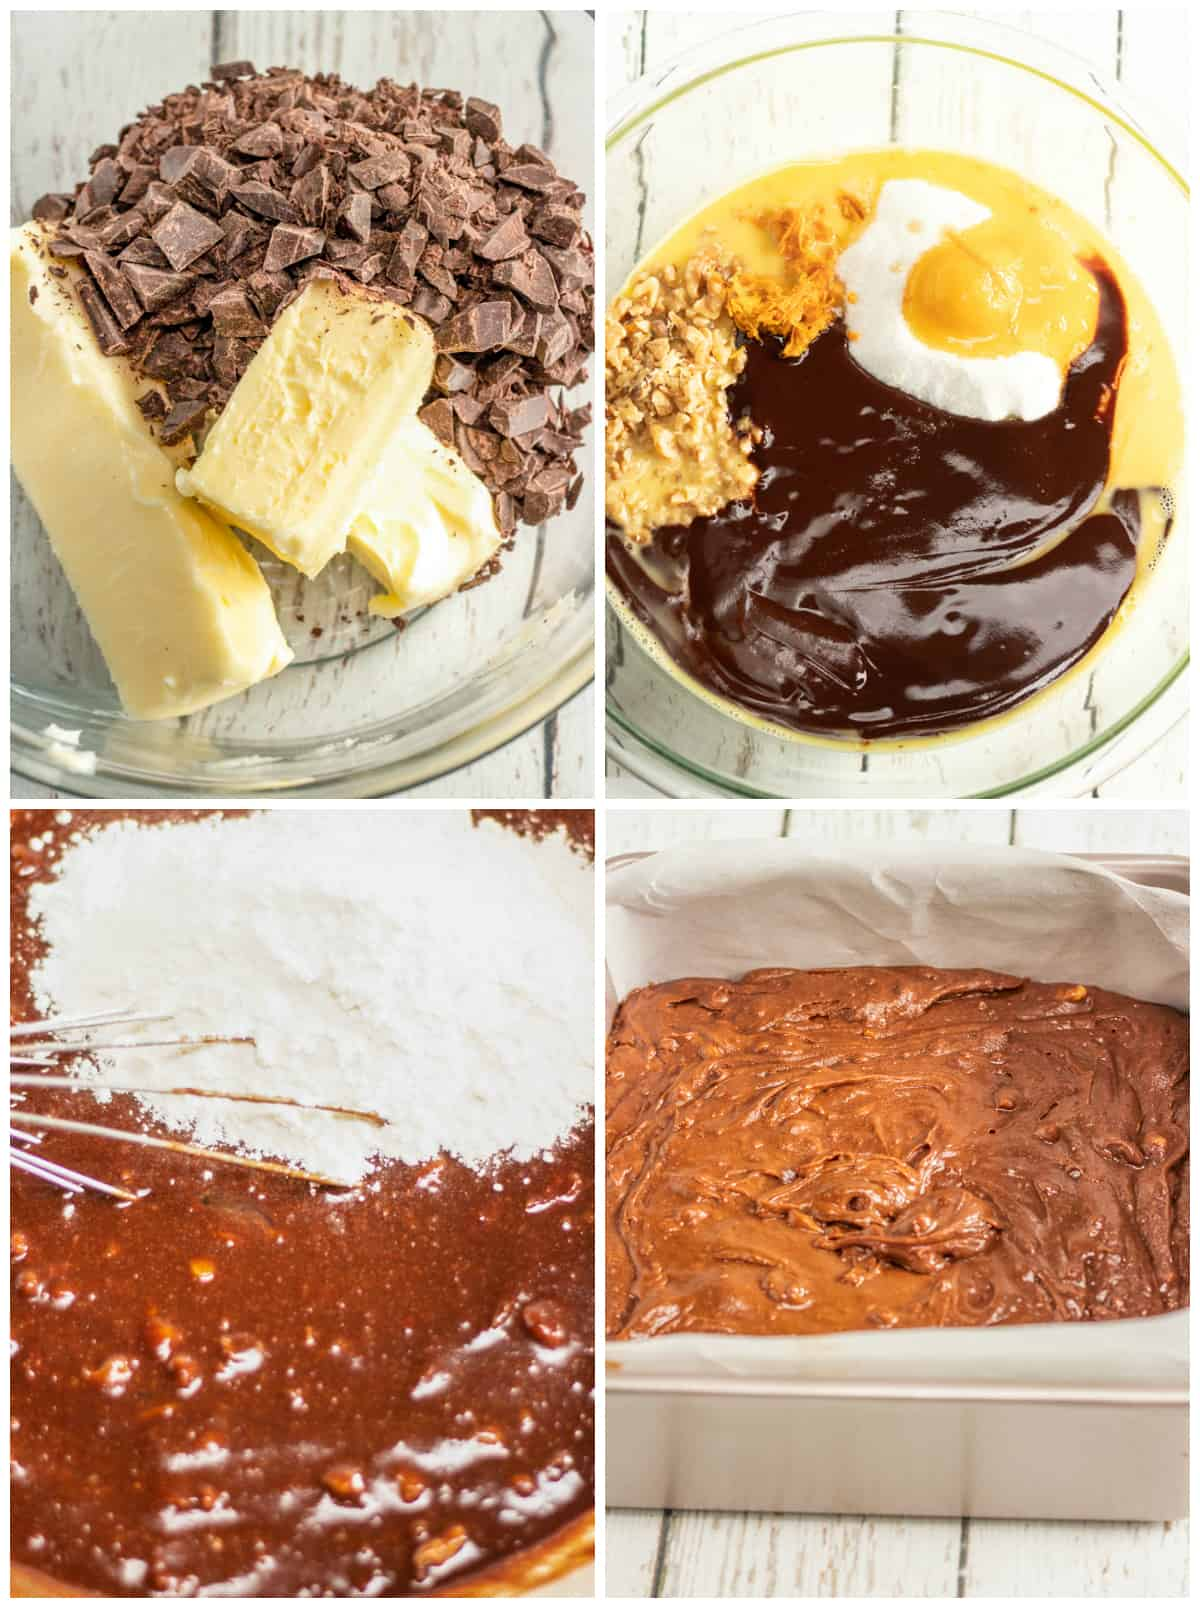 Step by step photos on how to make Chocolate Orange Brownies